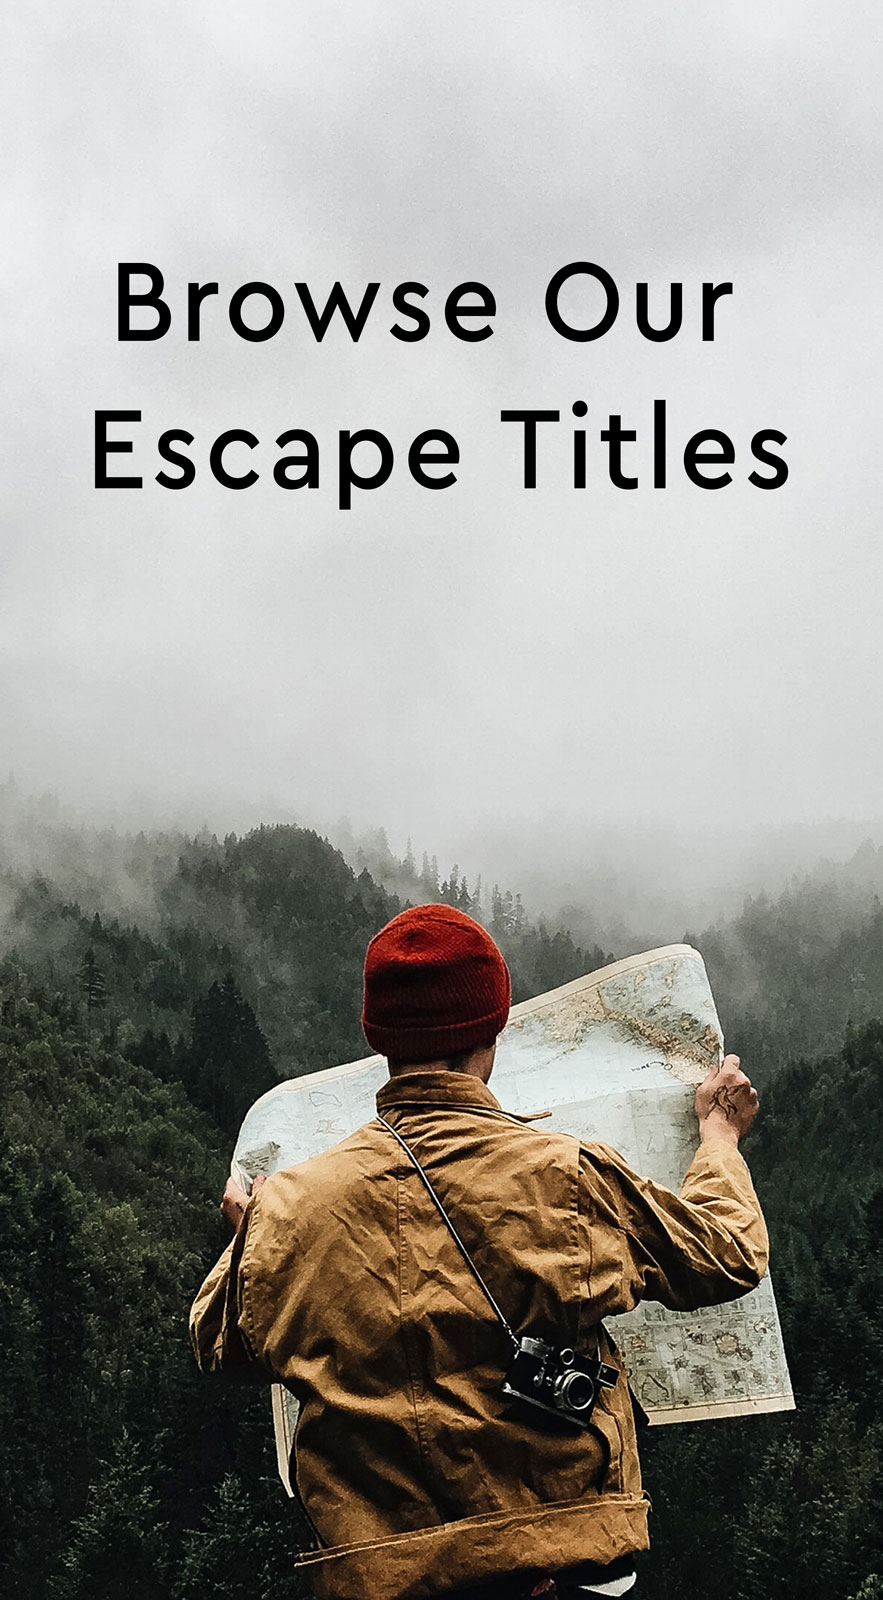 Browse Our Escape Titles